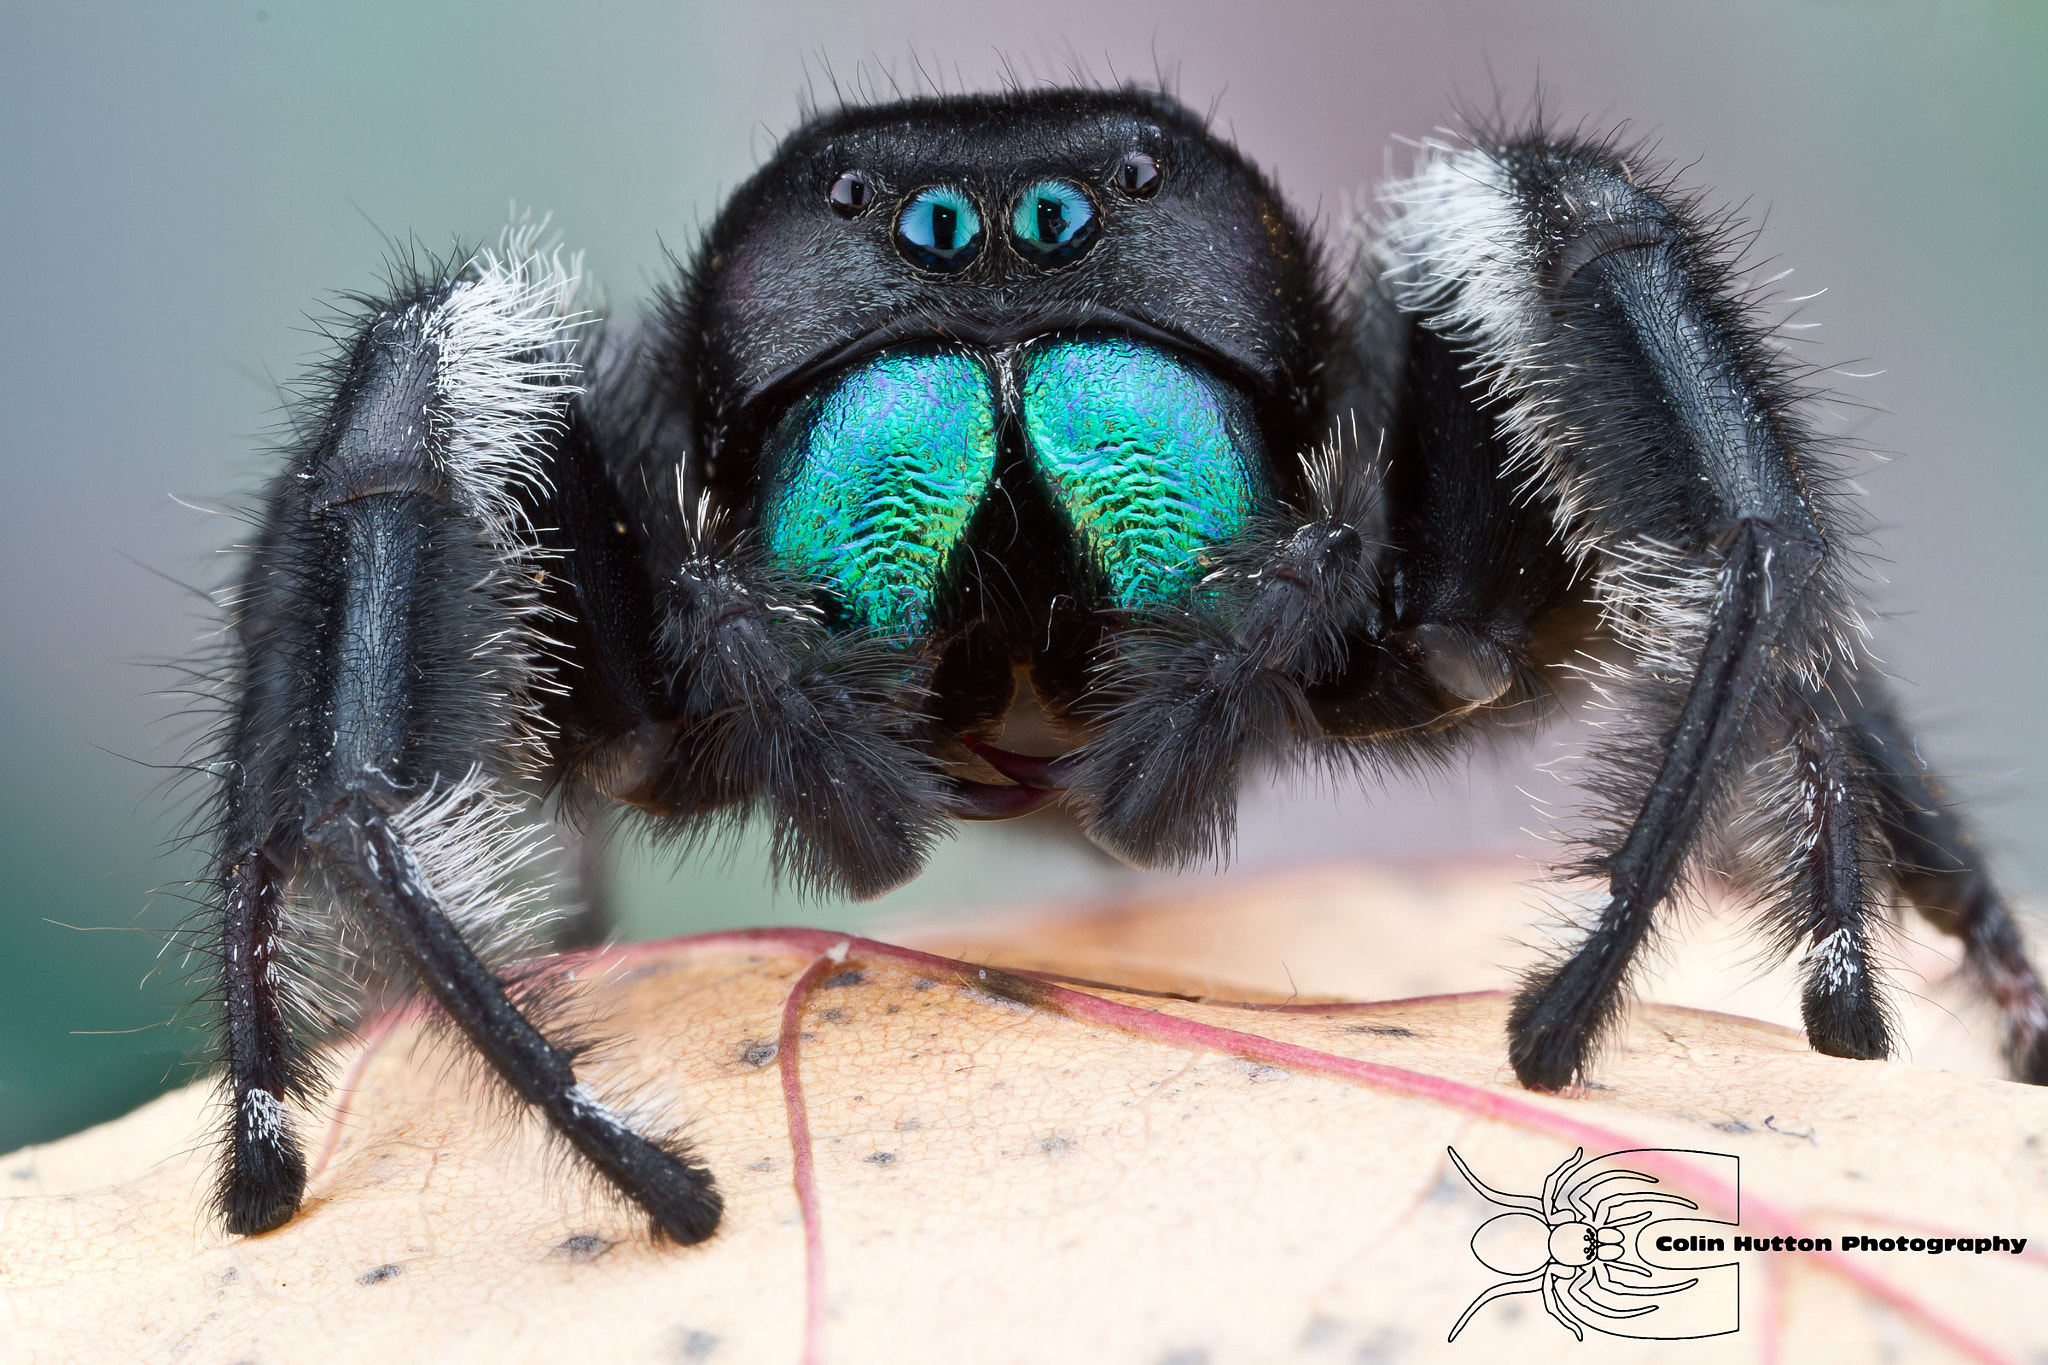 Photograph Phidippus regius - Regal Jumping spider by Colin Hutton on 500px